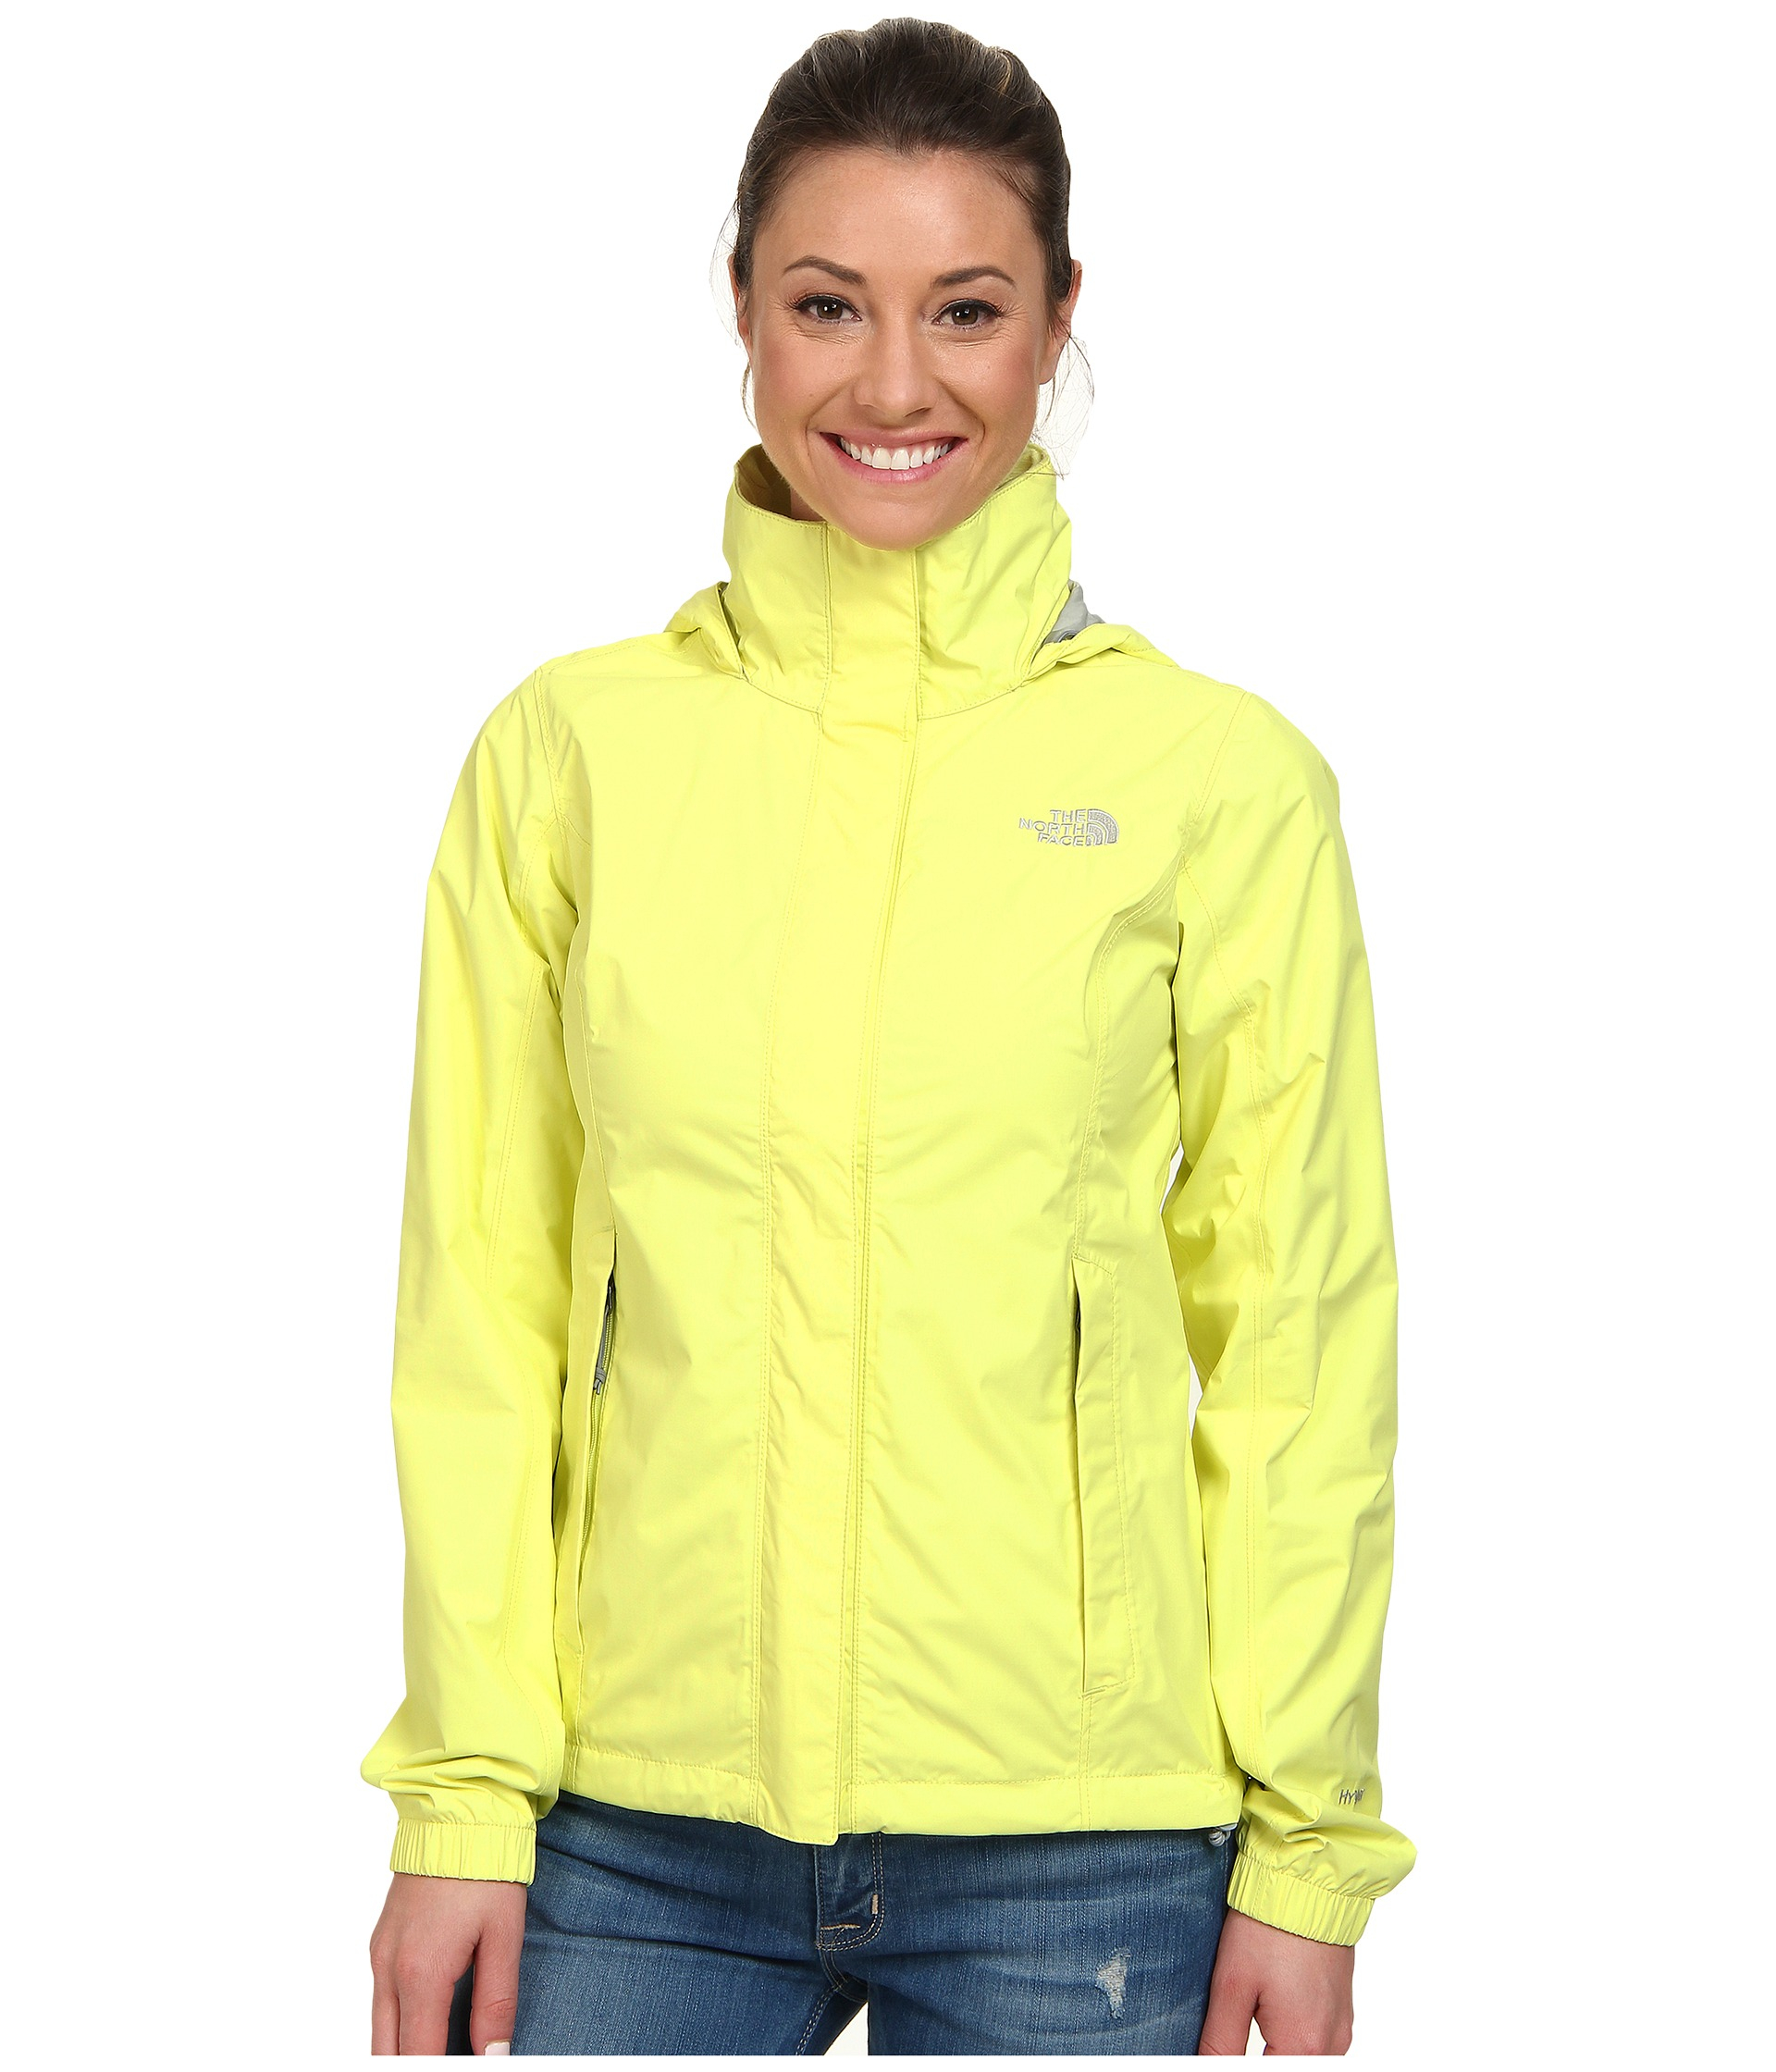 82a42e07e84b Lyst - The North Face Resolve Jacket in Yellow